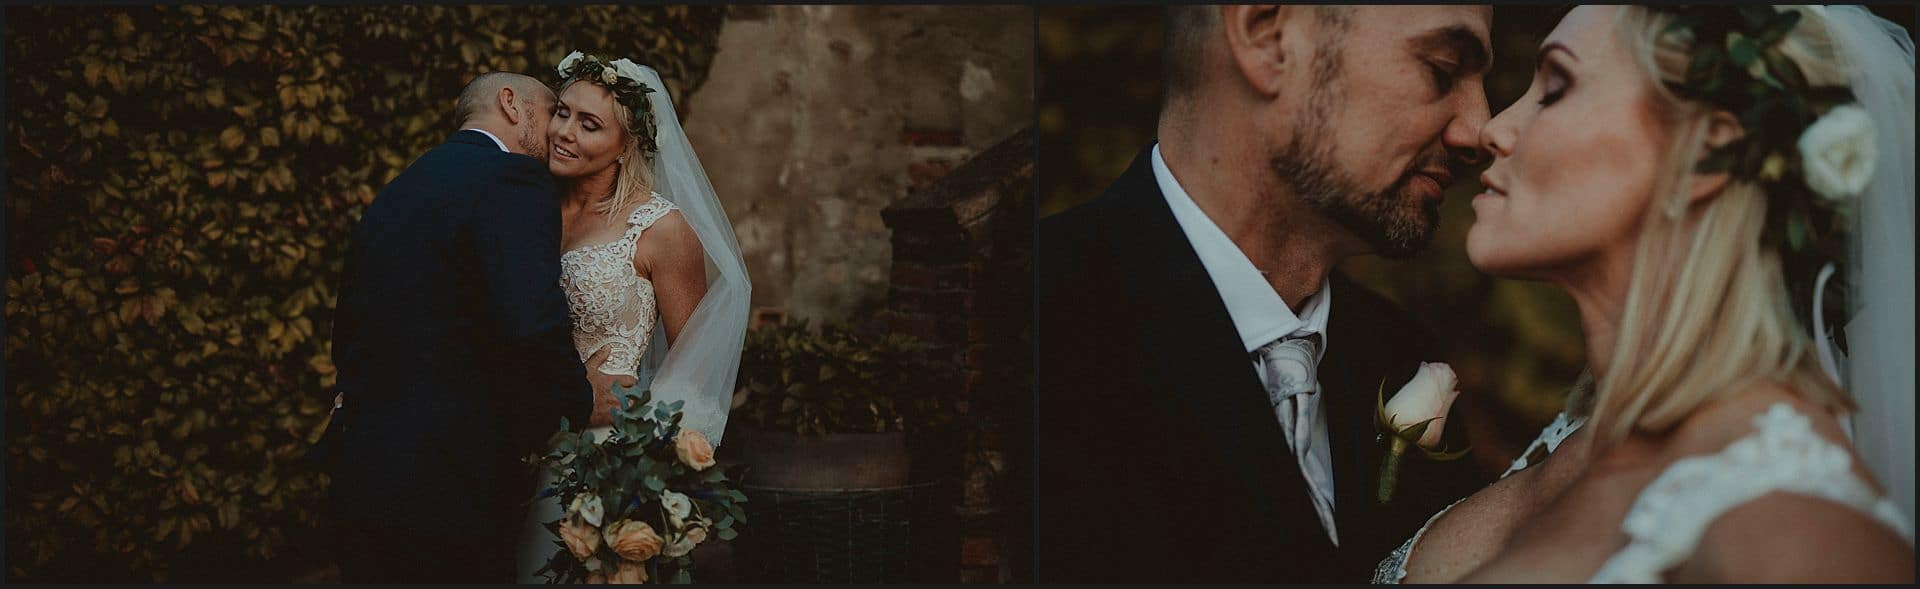 romance, bride, groom, intimate, kiss, destination wedding, locanda in tuscany